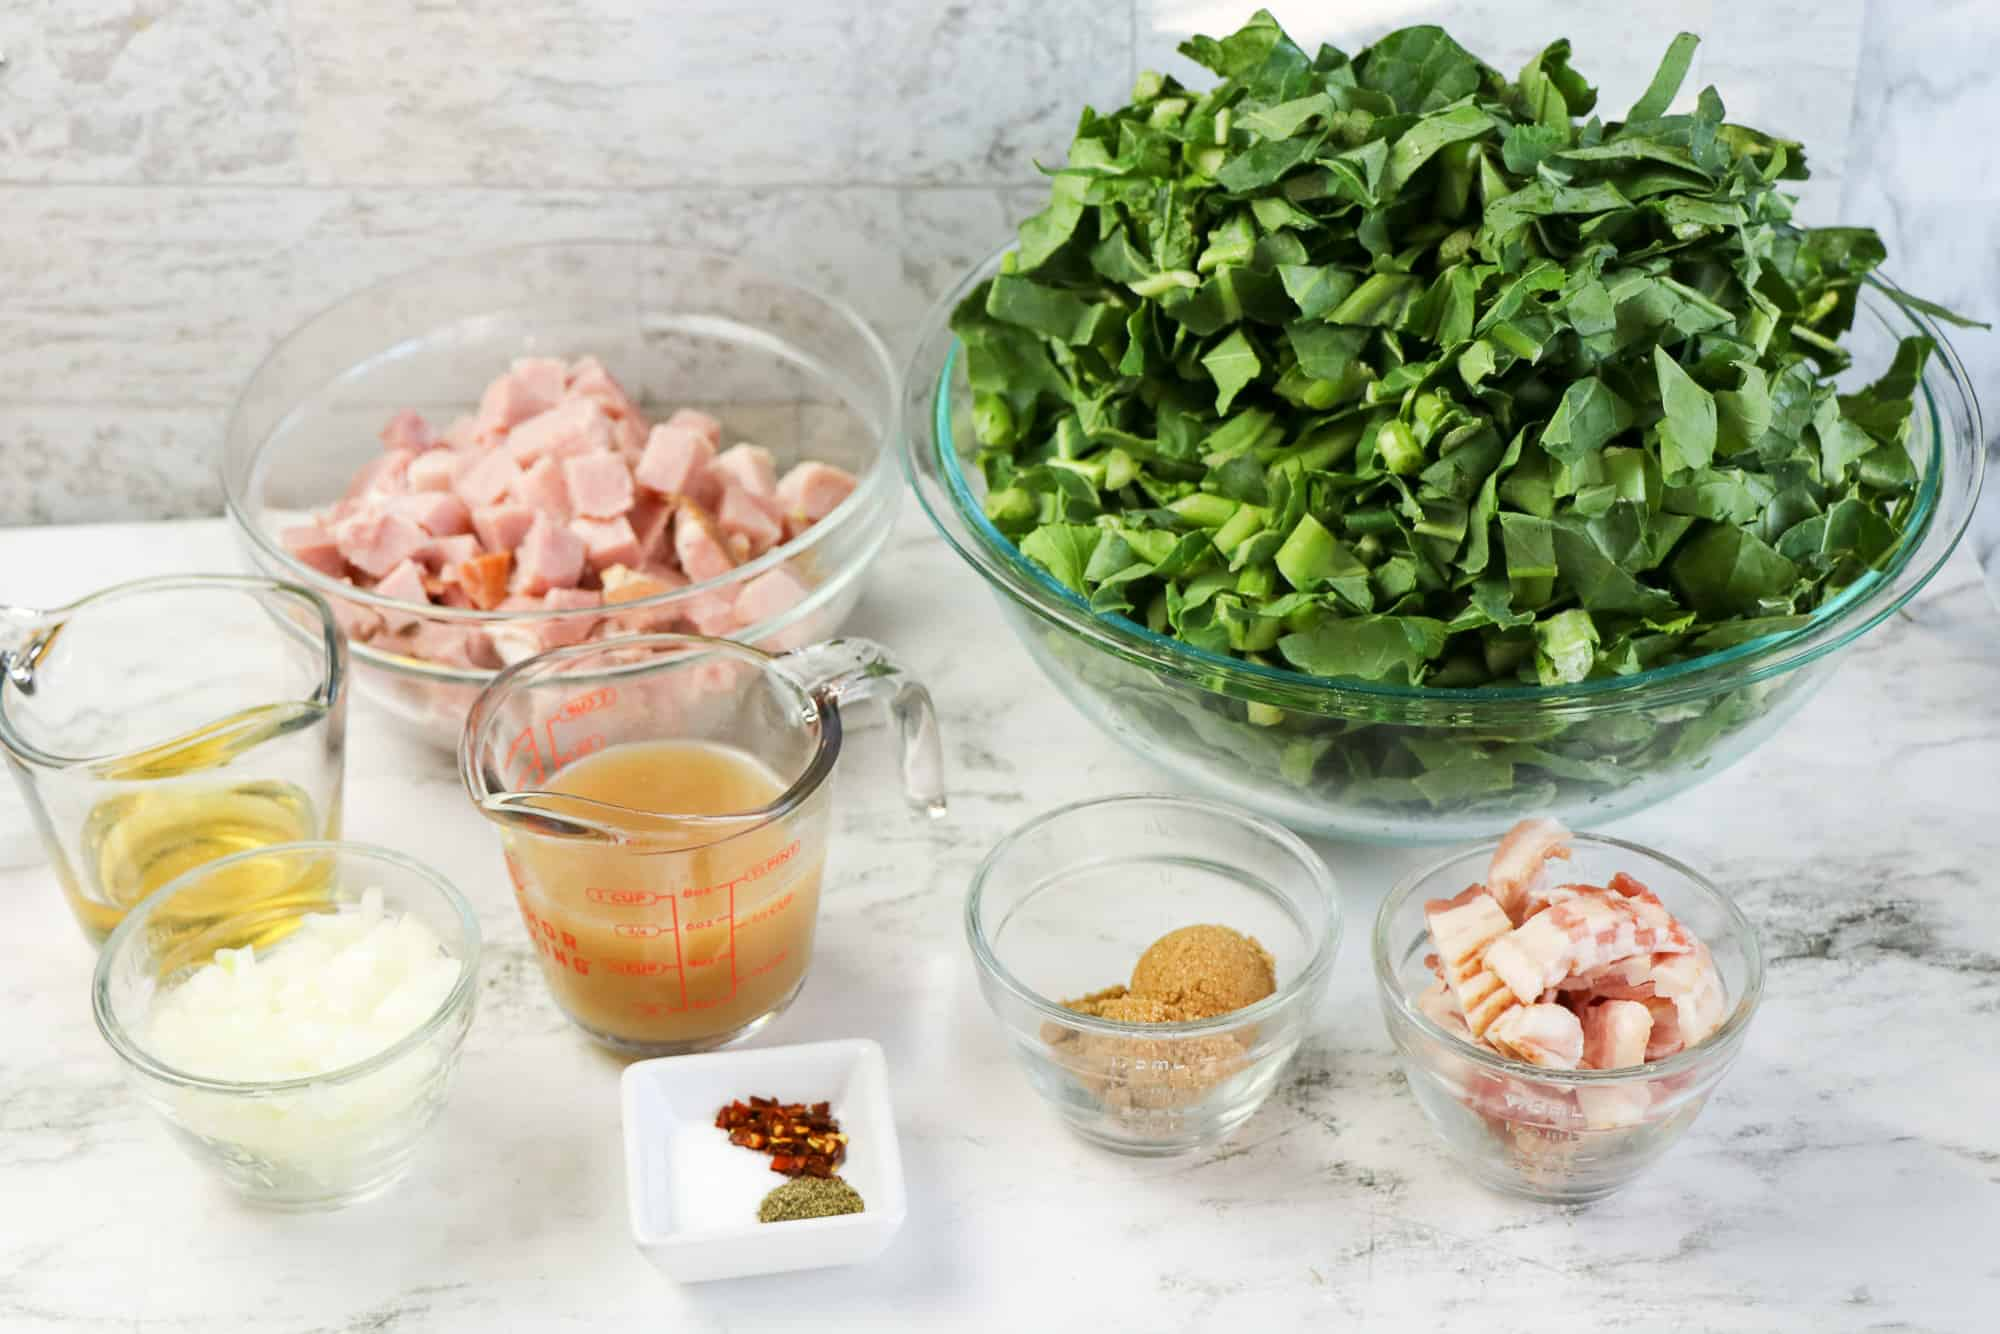 ingredients for collard greens in ingredient bowls